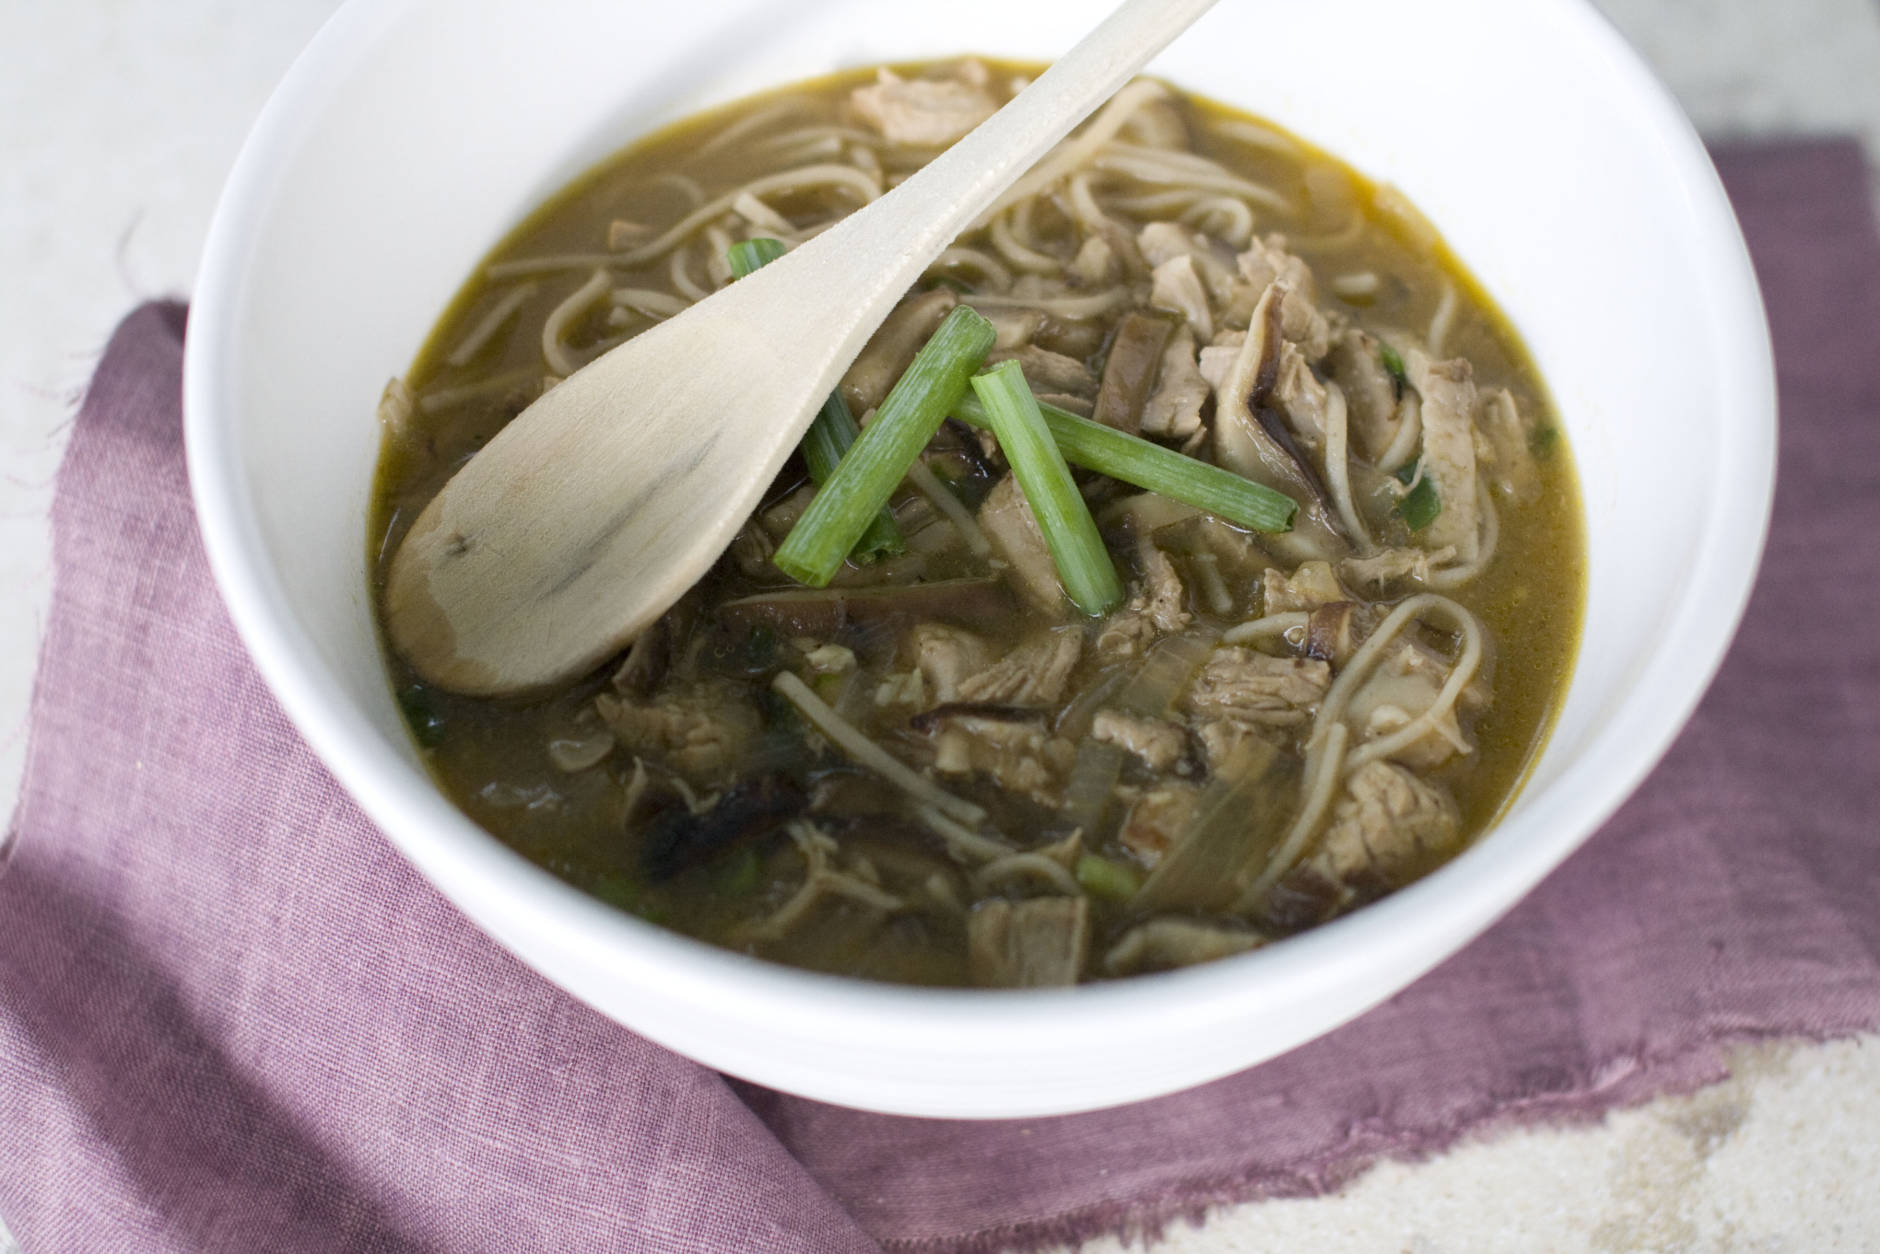 This Aug. 26, 2013 photo shows Shiitake mushroom ginger noodle soup with garlic pork in Concord, N.H. (AP Photo/Matthew Mead)